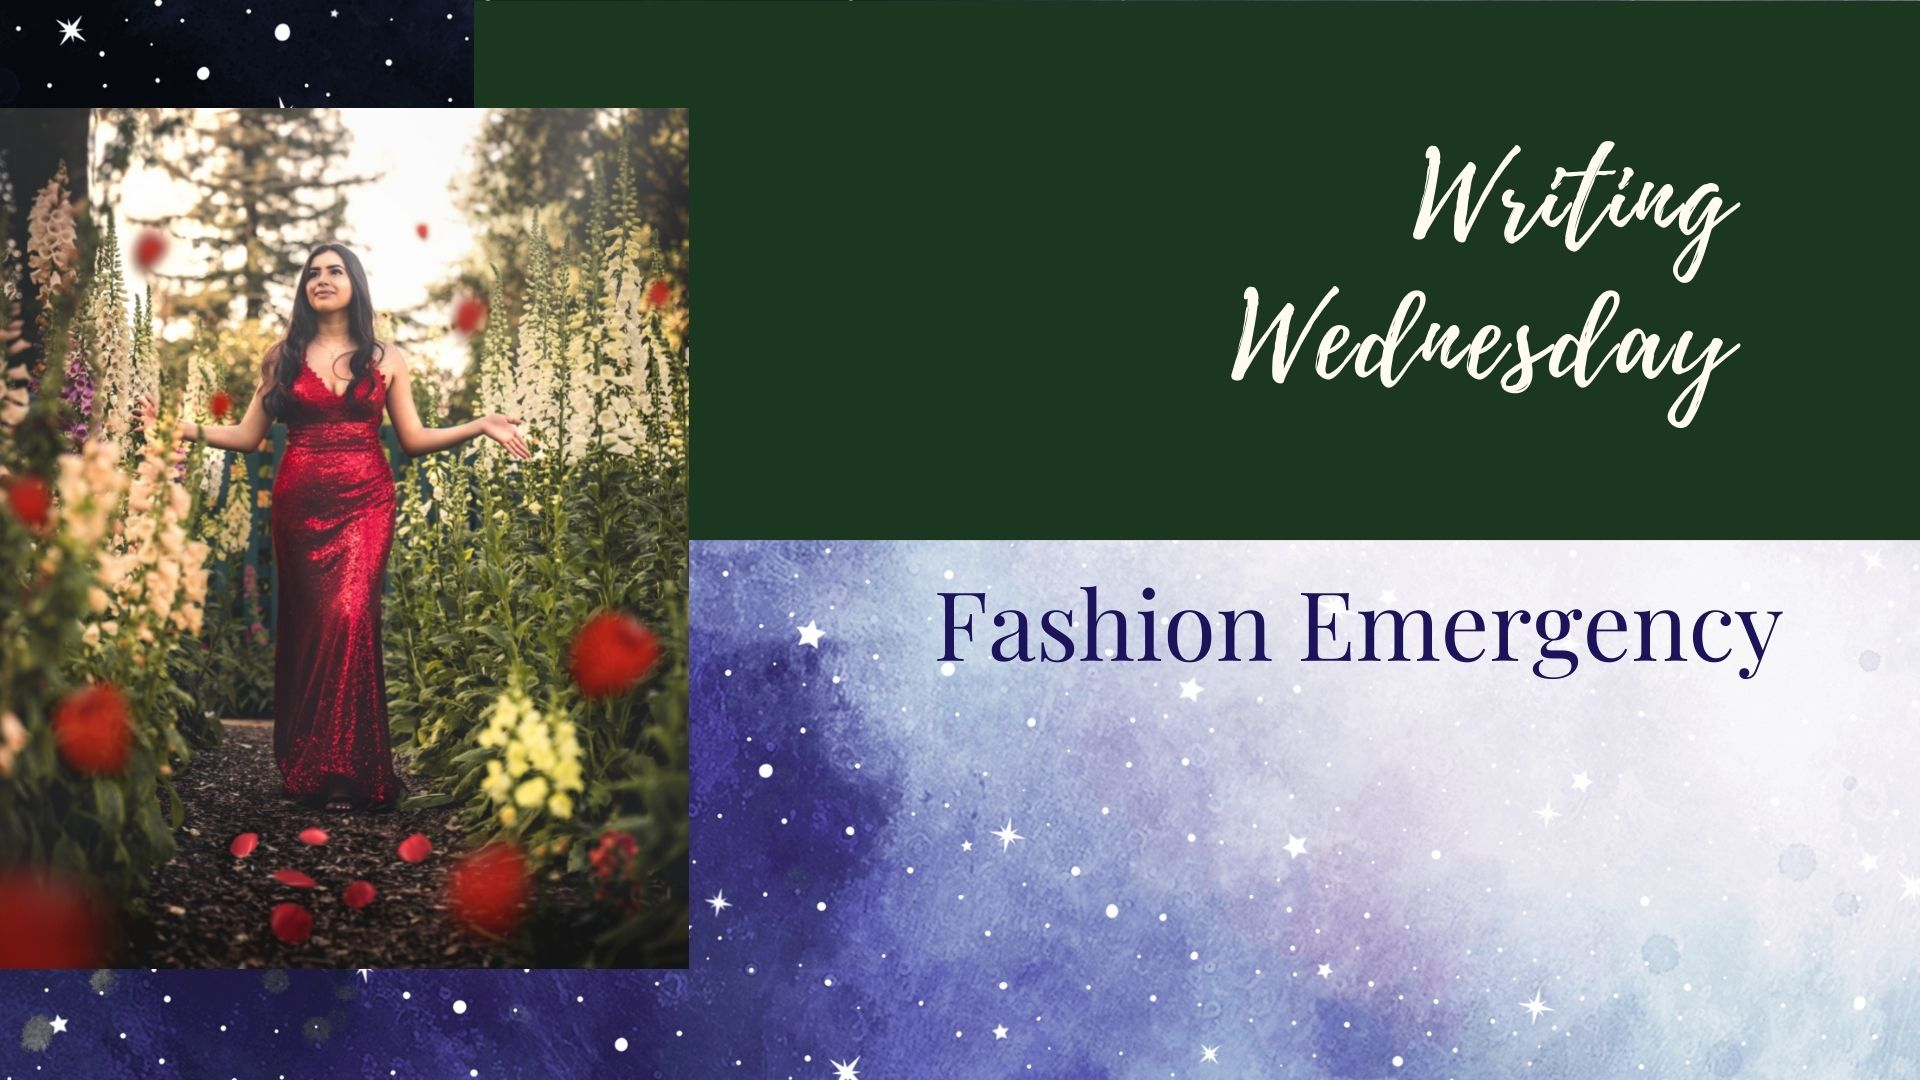 You are currently viewing Writing Wednesday: Fashion Emergency